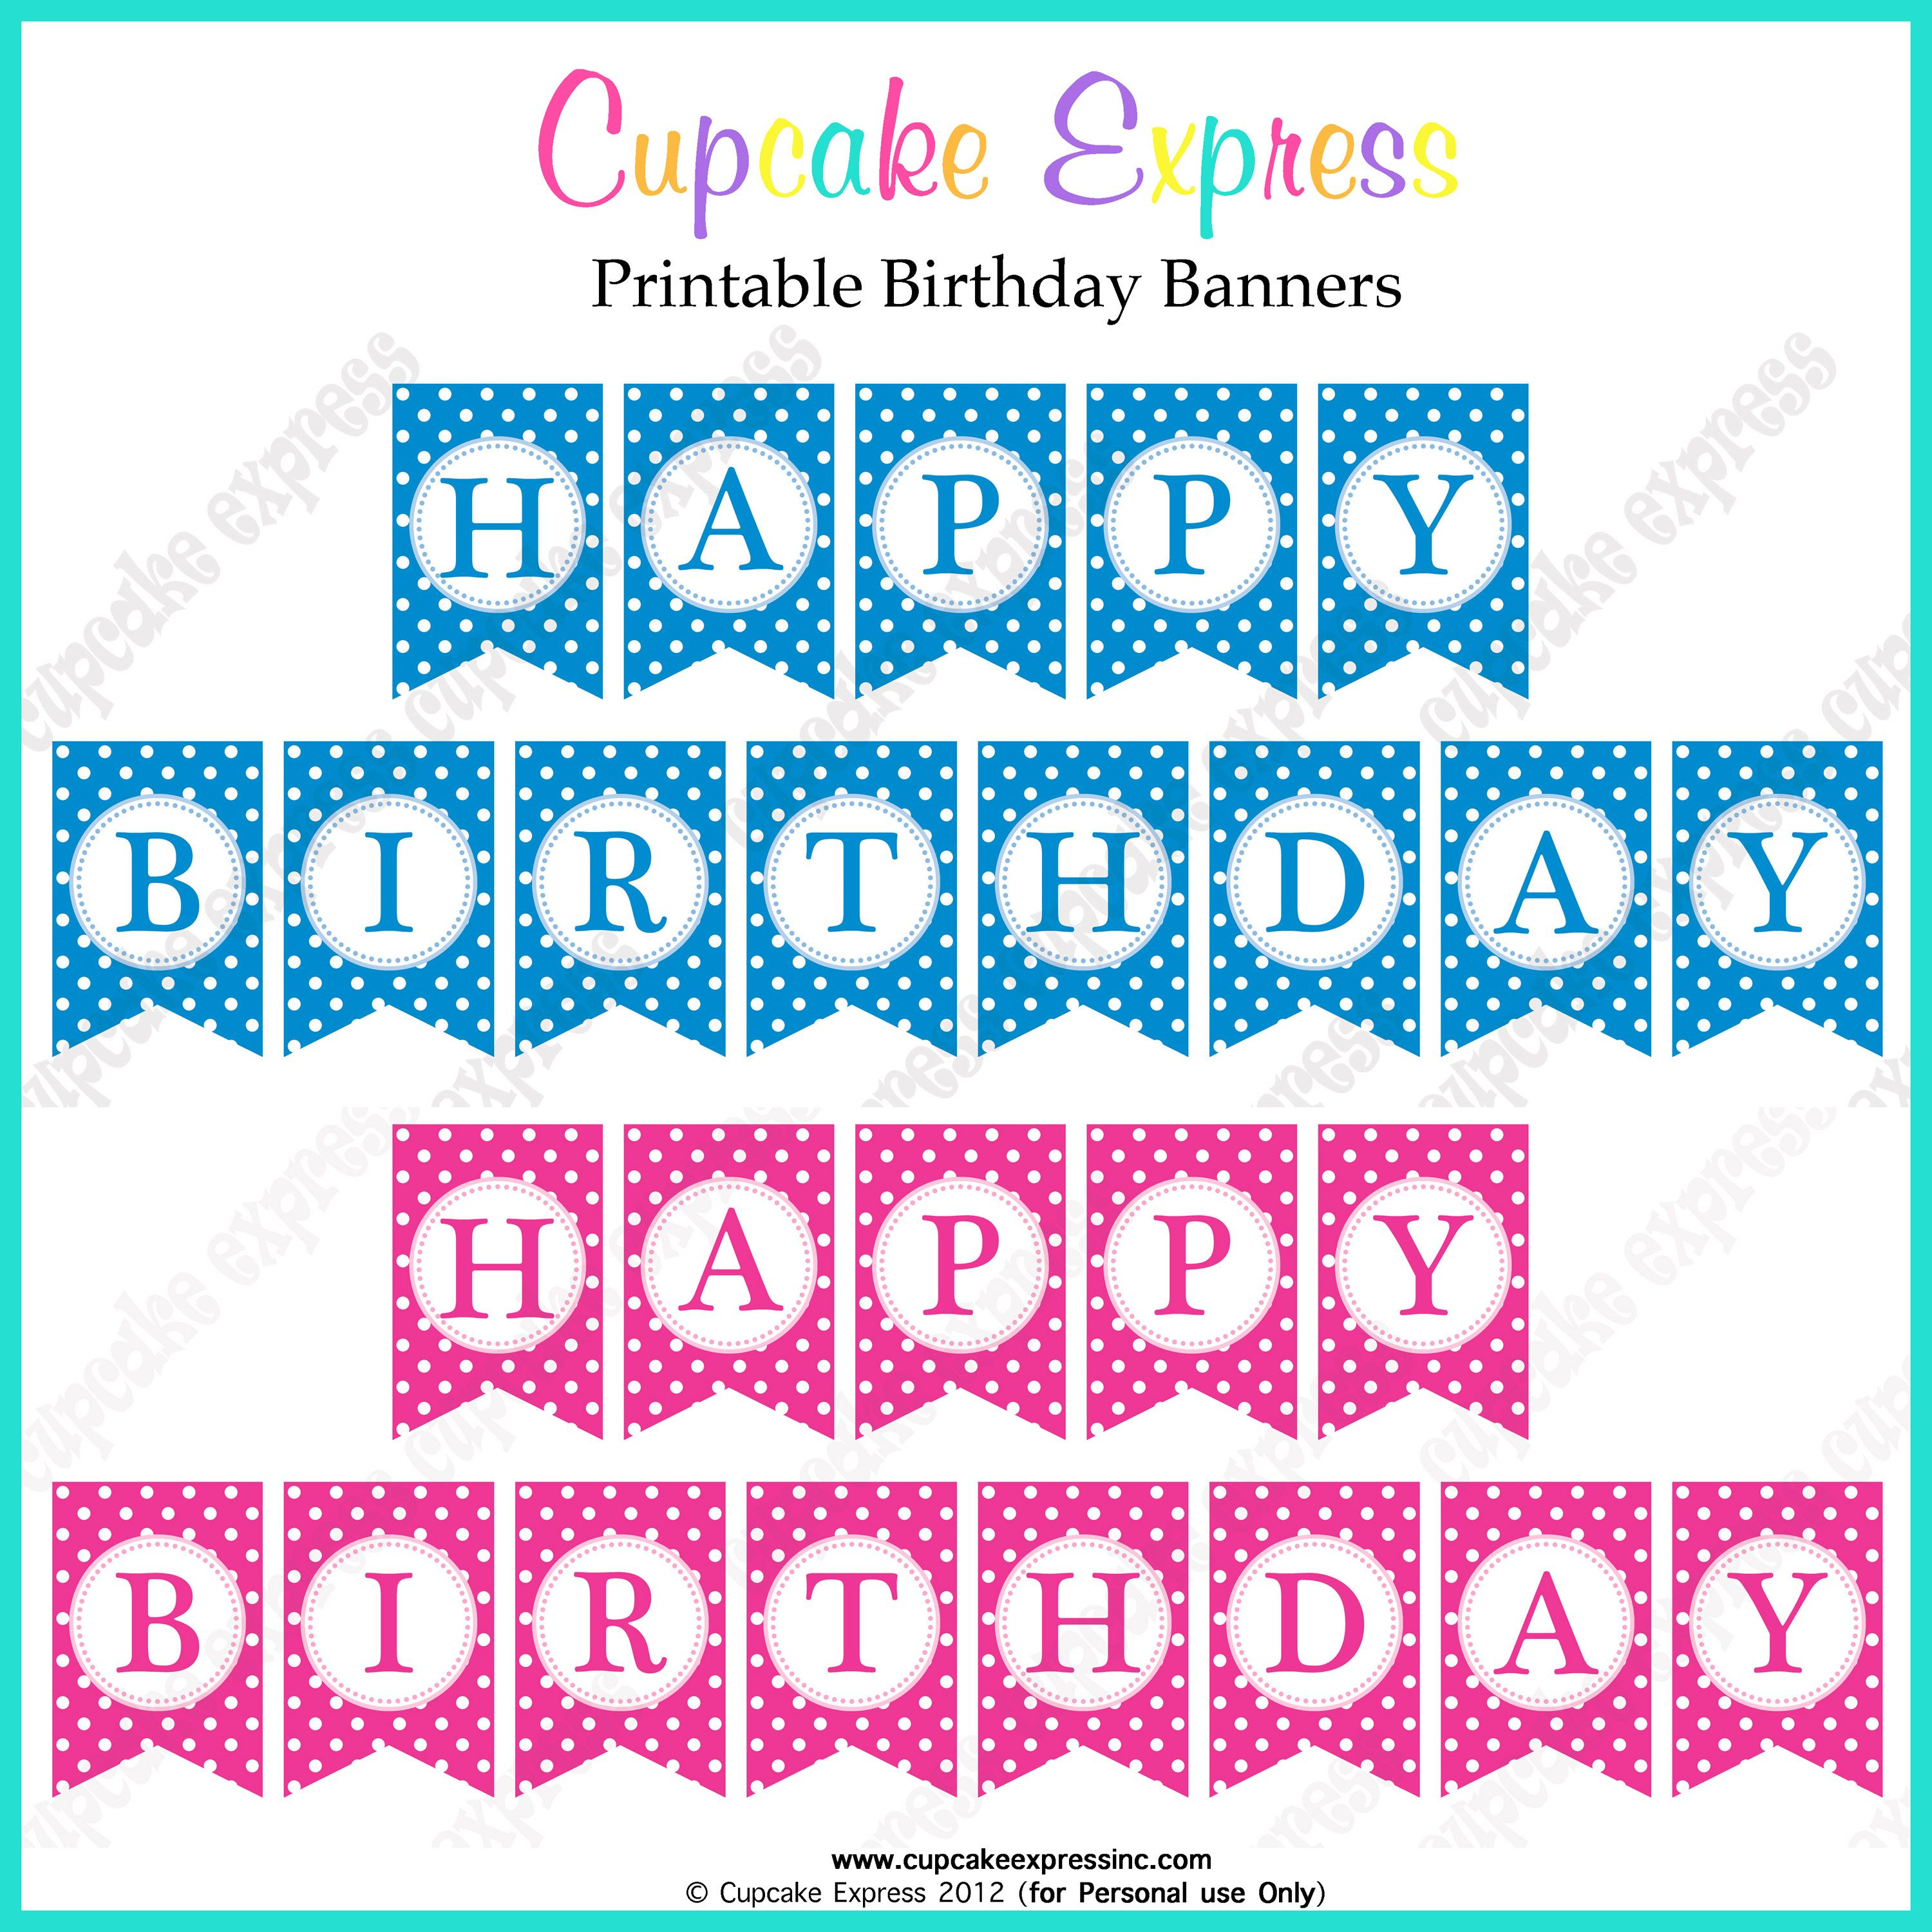 Free Printable Happy Birthday Banners Pink Blue | Free Printables - Free Printable Princess Birthday Banner